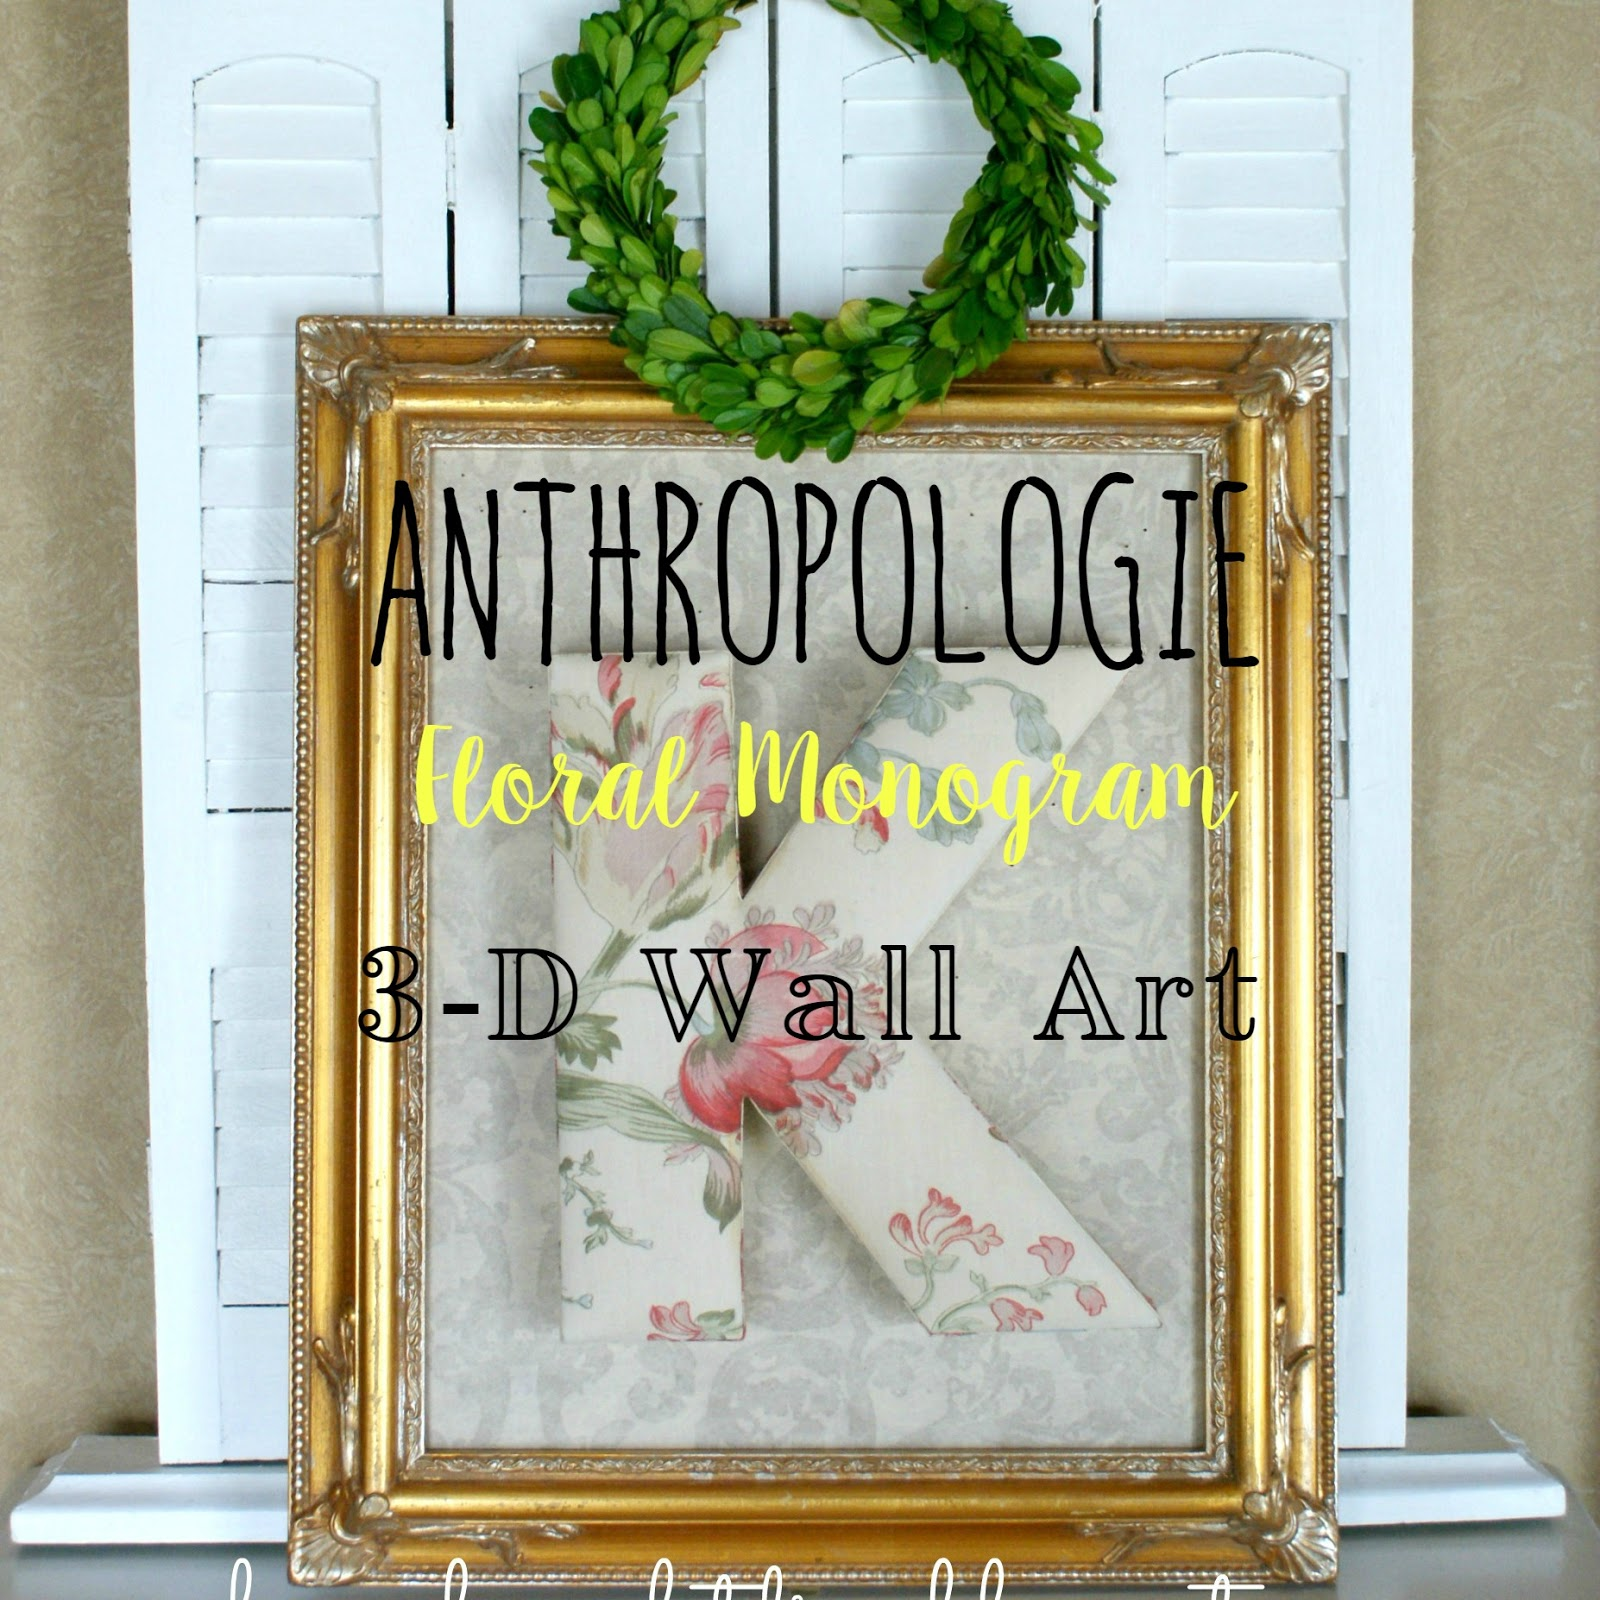 Anthropologie Wall Art our hopeful home: anthropologie floral monogram 3-d wall art